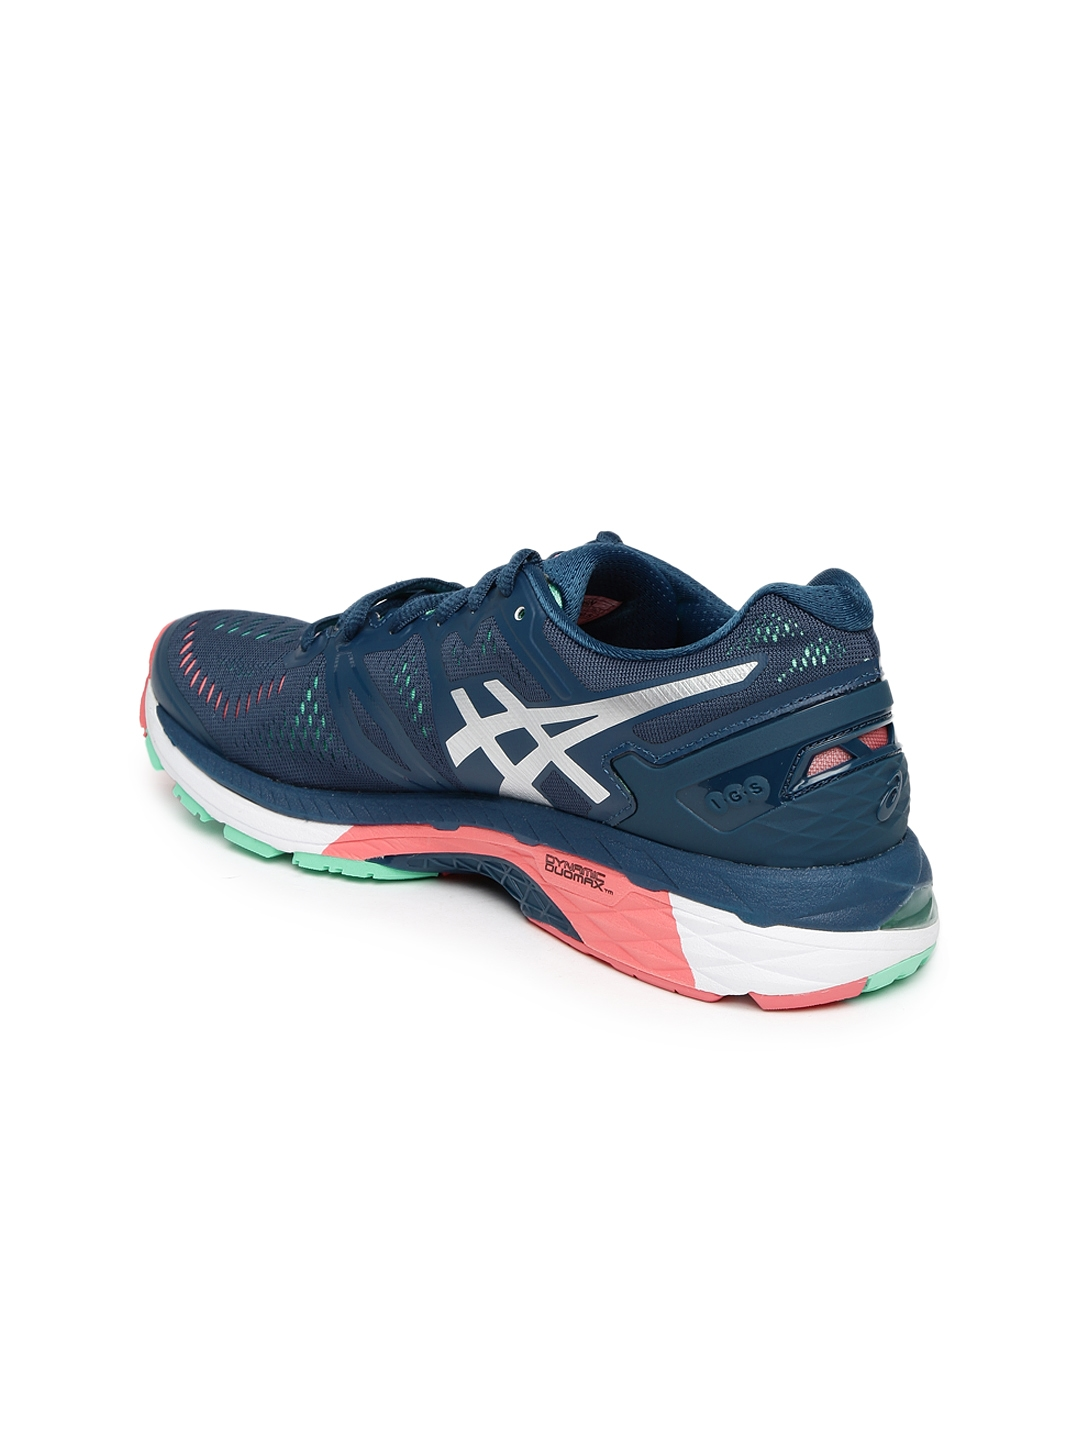 8f8df9e03fbed4 Buy ASICS Women Navy Blue Gel Kayano 23 Running Shoes - Sports Shoes ...